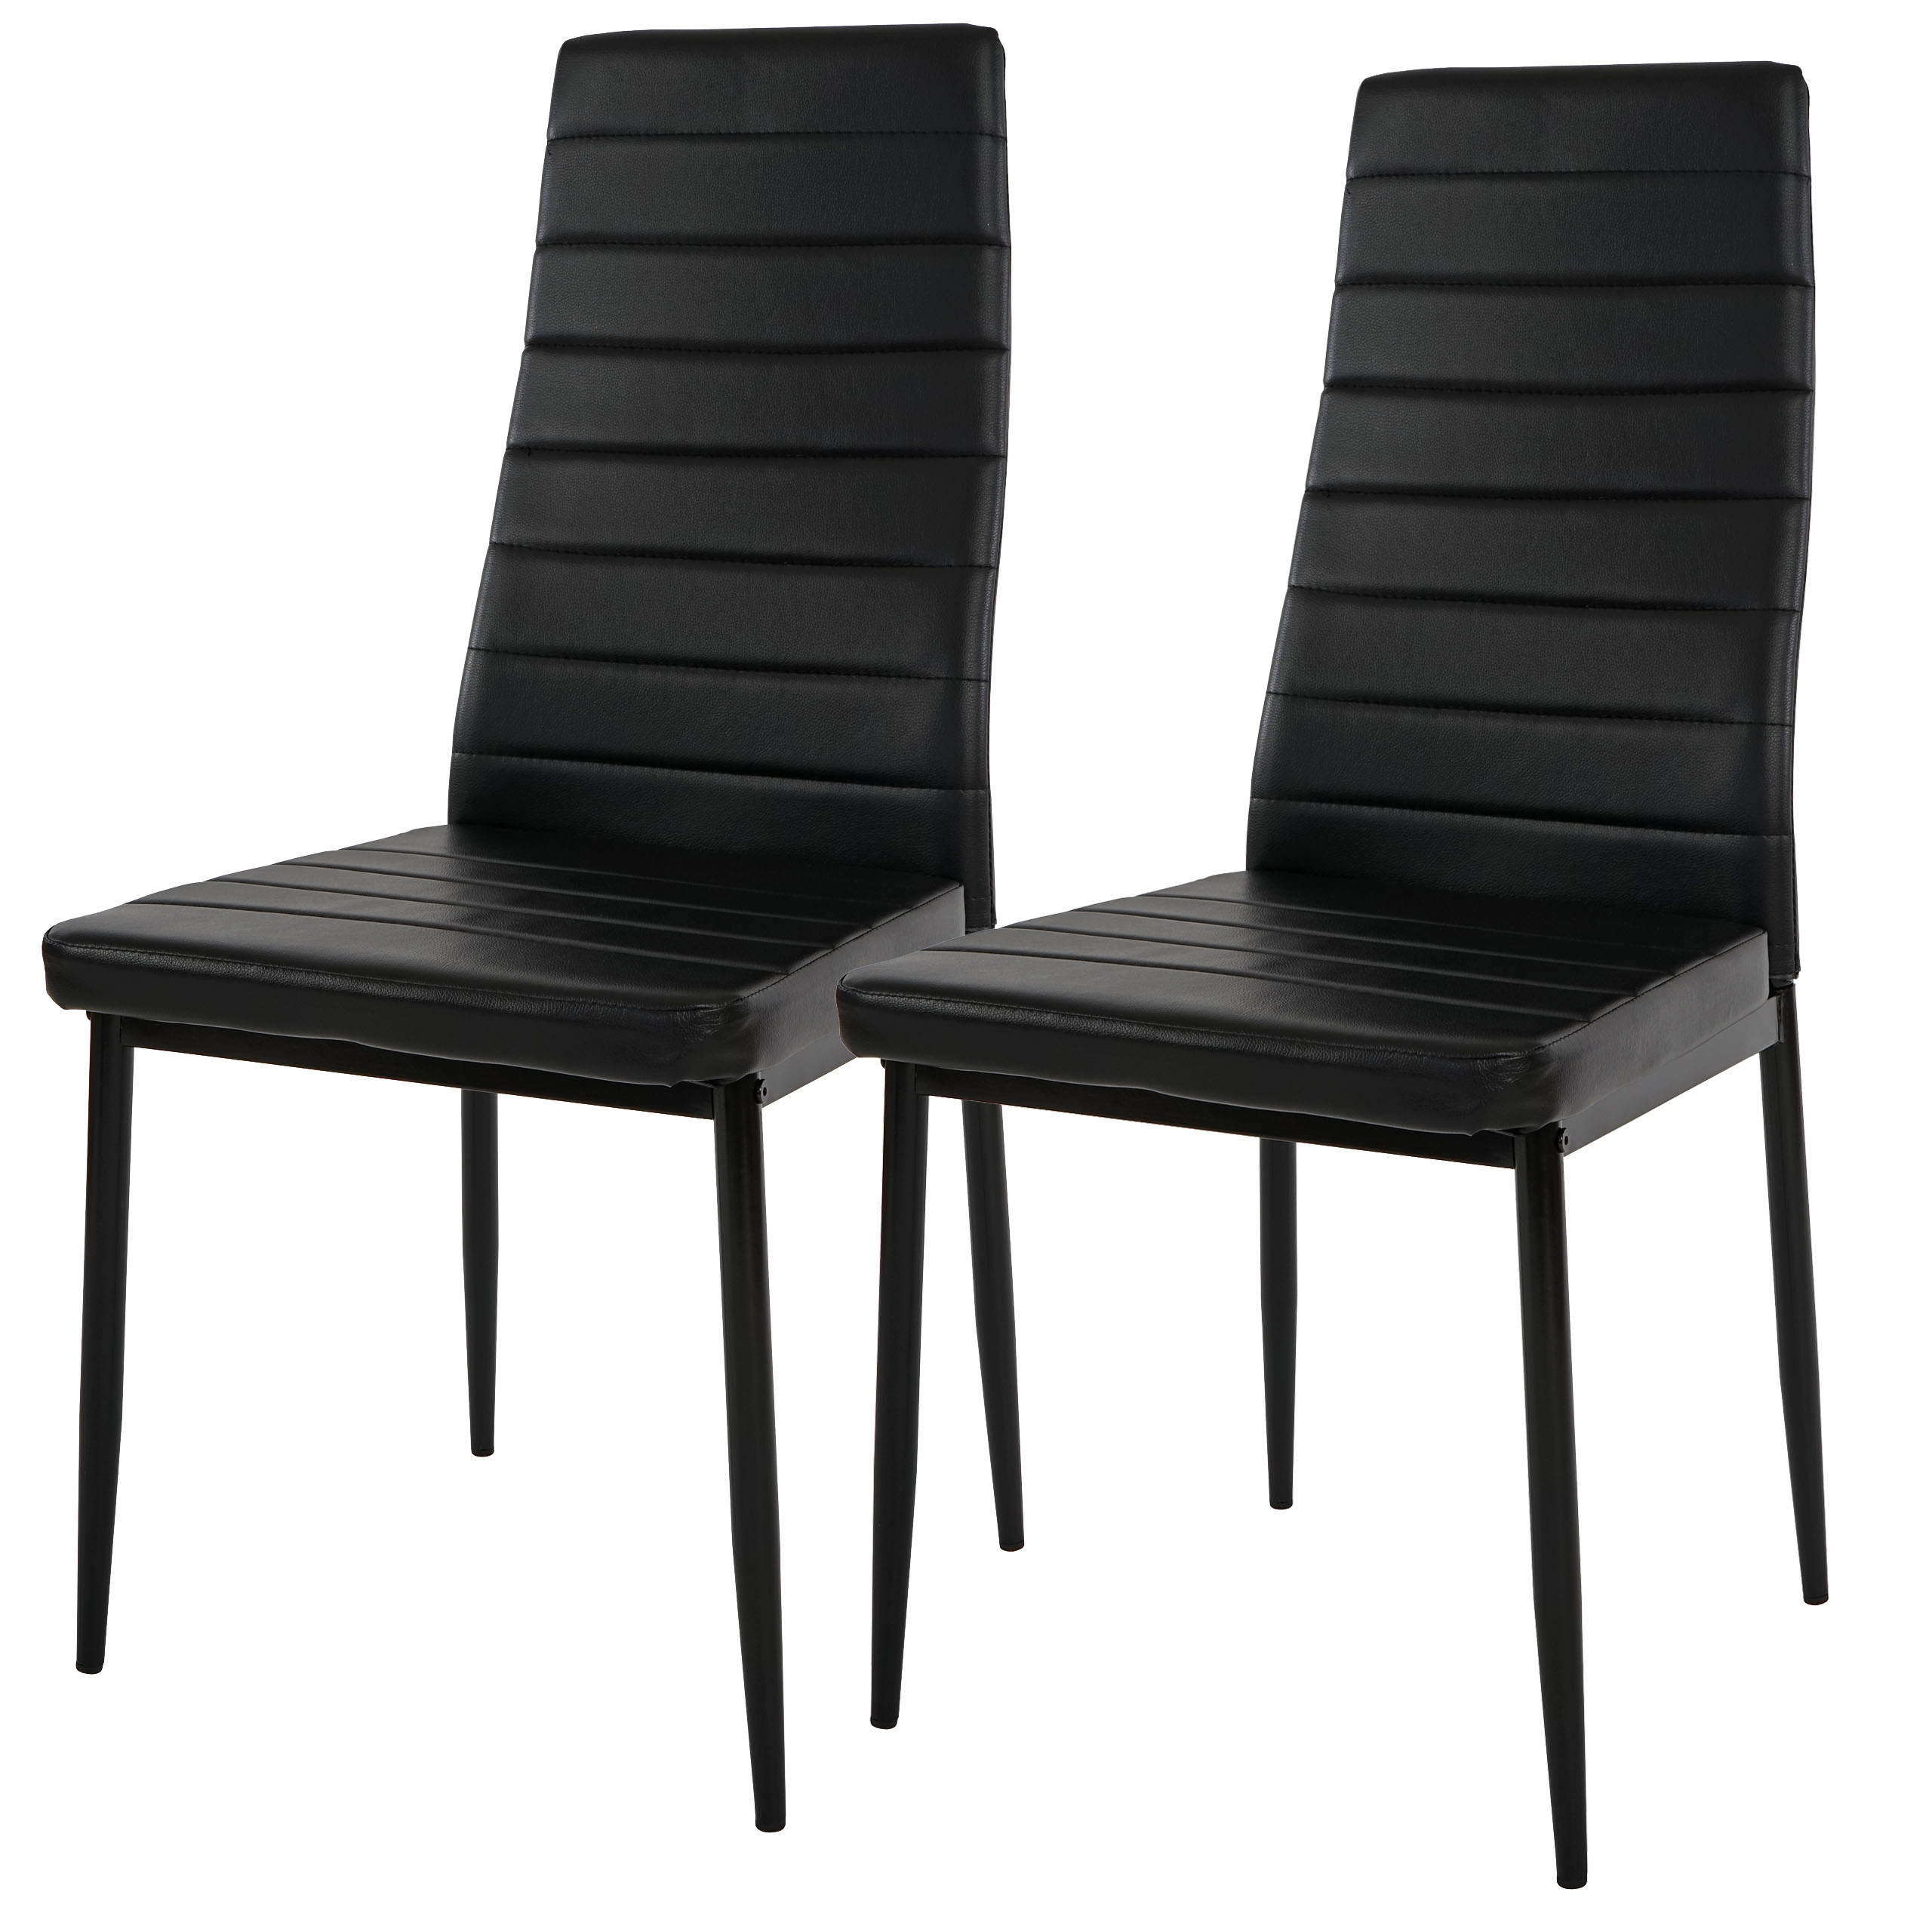 2x esszimmerstuhl lixa stuhl lehnstuhl kunstleder schwarz. Black Bedroom Furniture Sets. Home Design Ideas